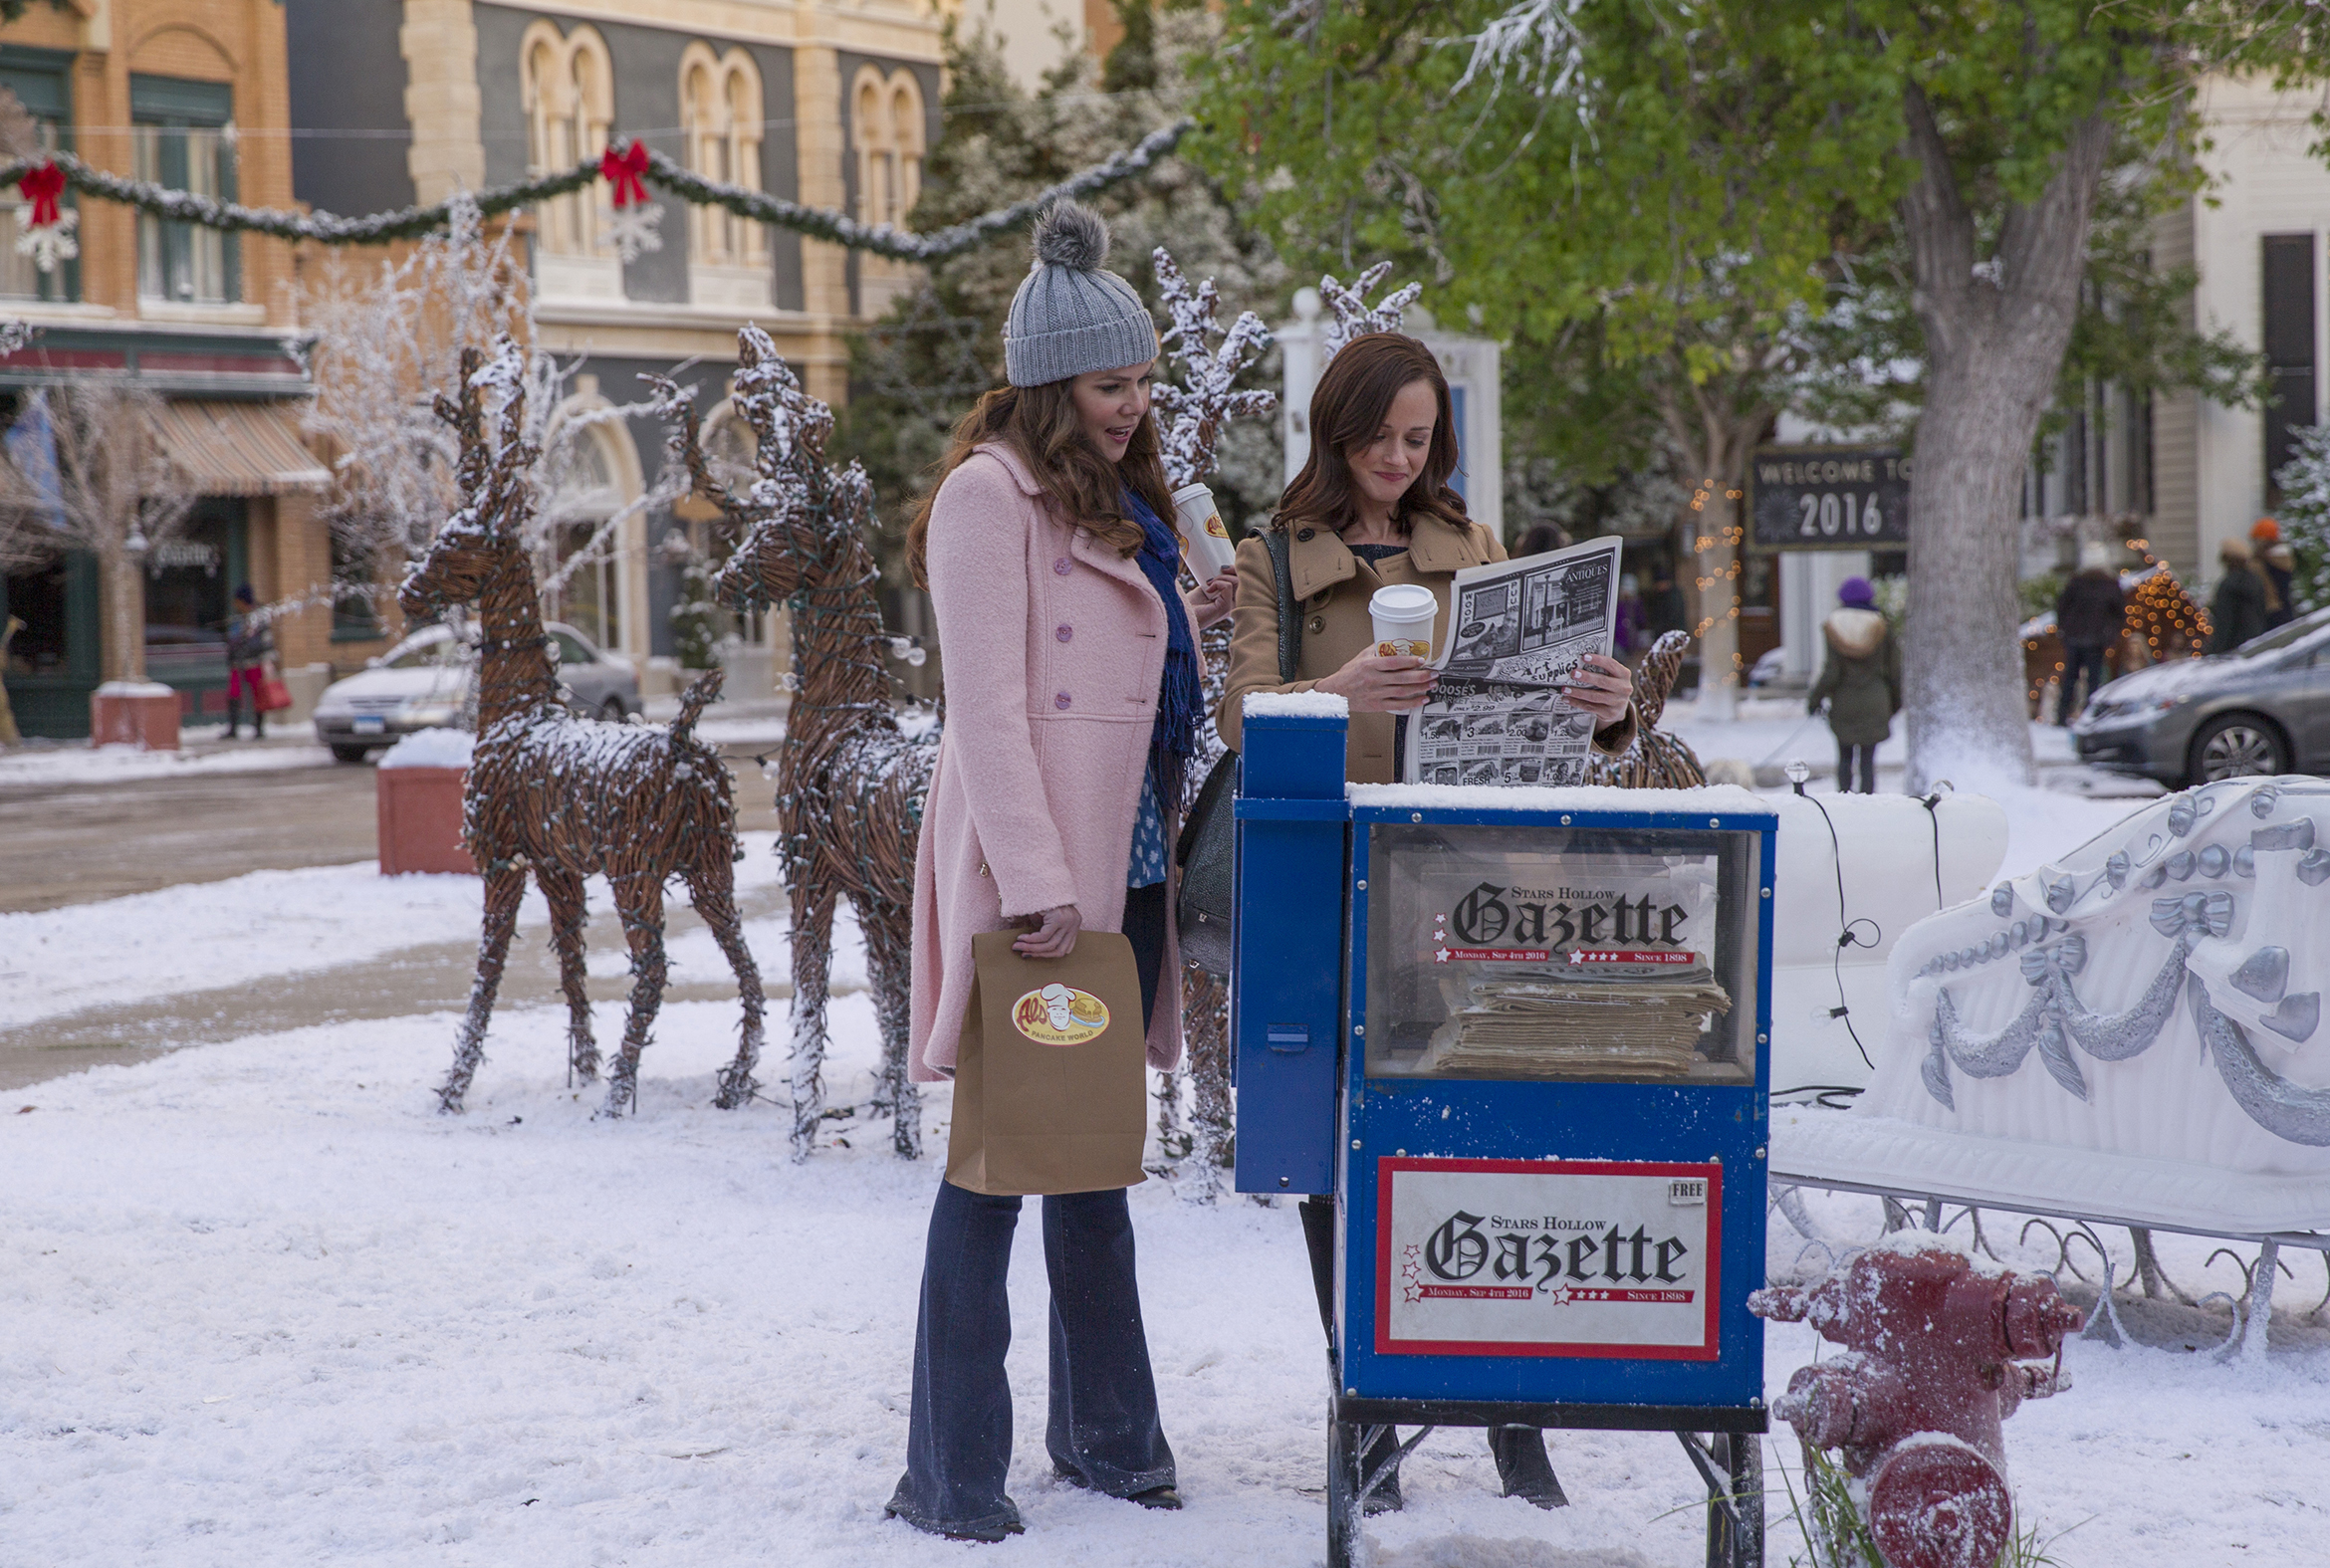 181129-are-these-places-real-stars-hollow-gilmore-girls-v2.jpg